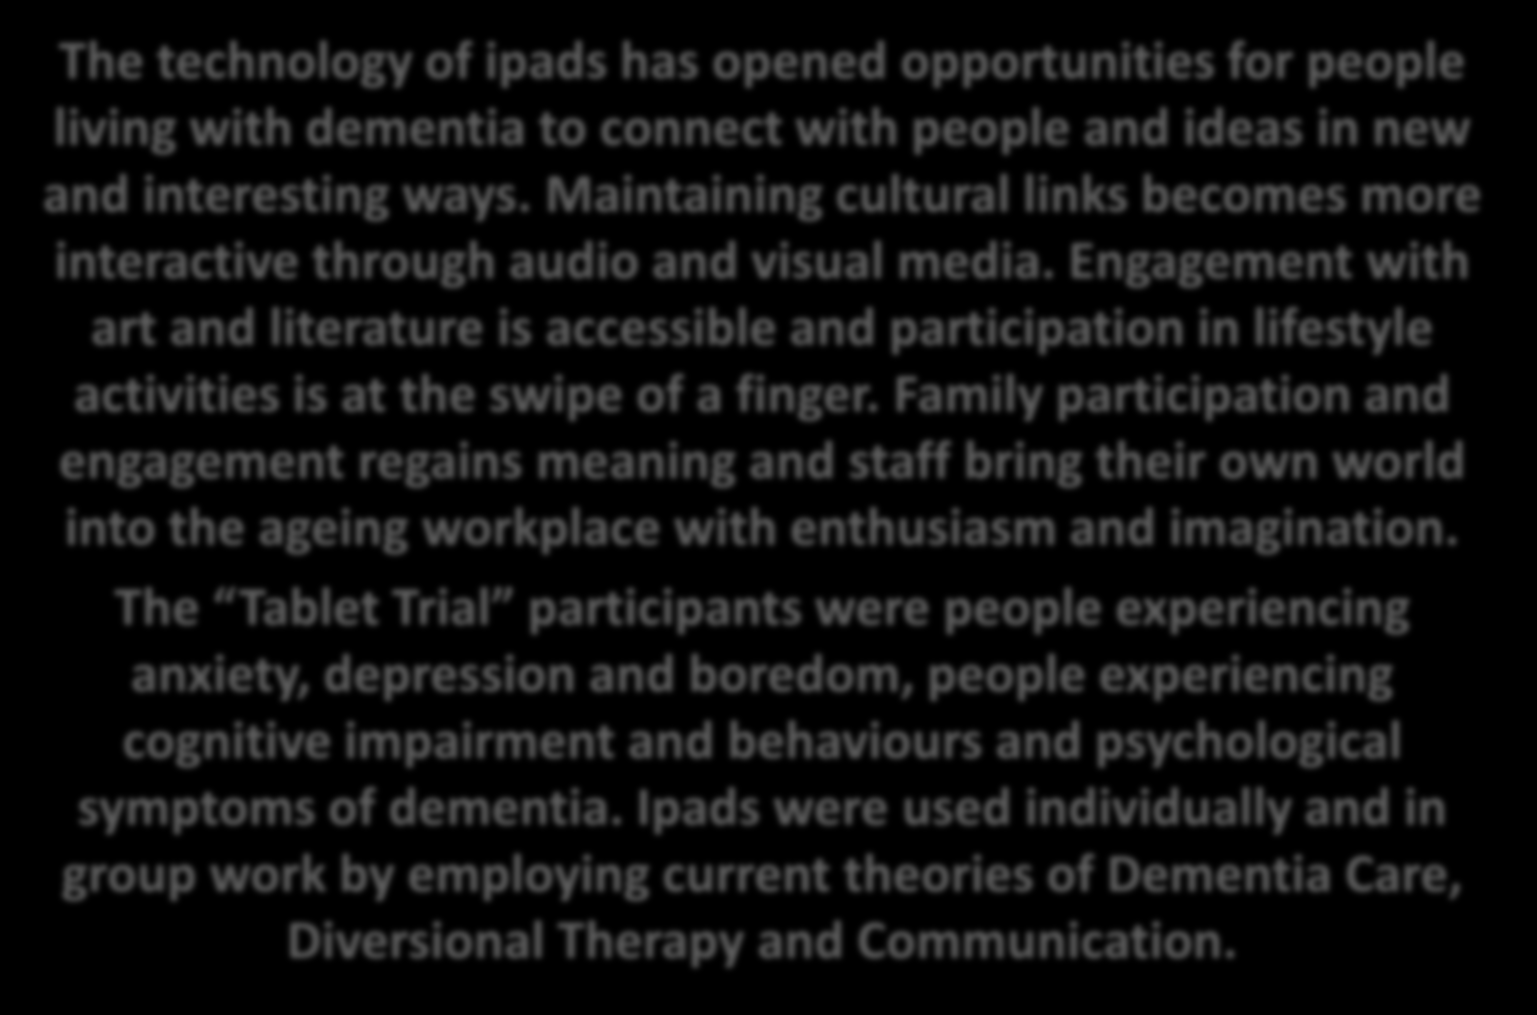 PARTICIPATION The technology of ipads has opened opportunities for people living with dementia to connect with people and ideas in new and interesting ways.